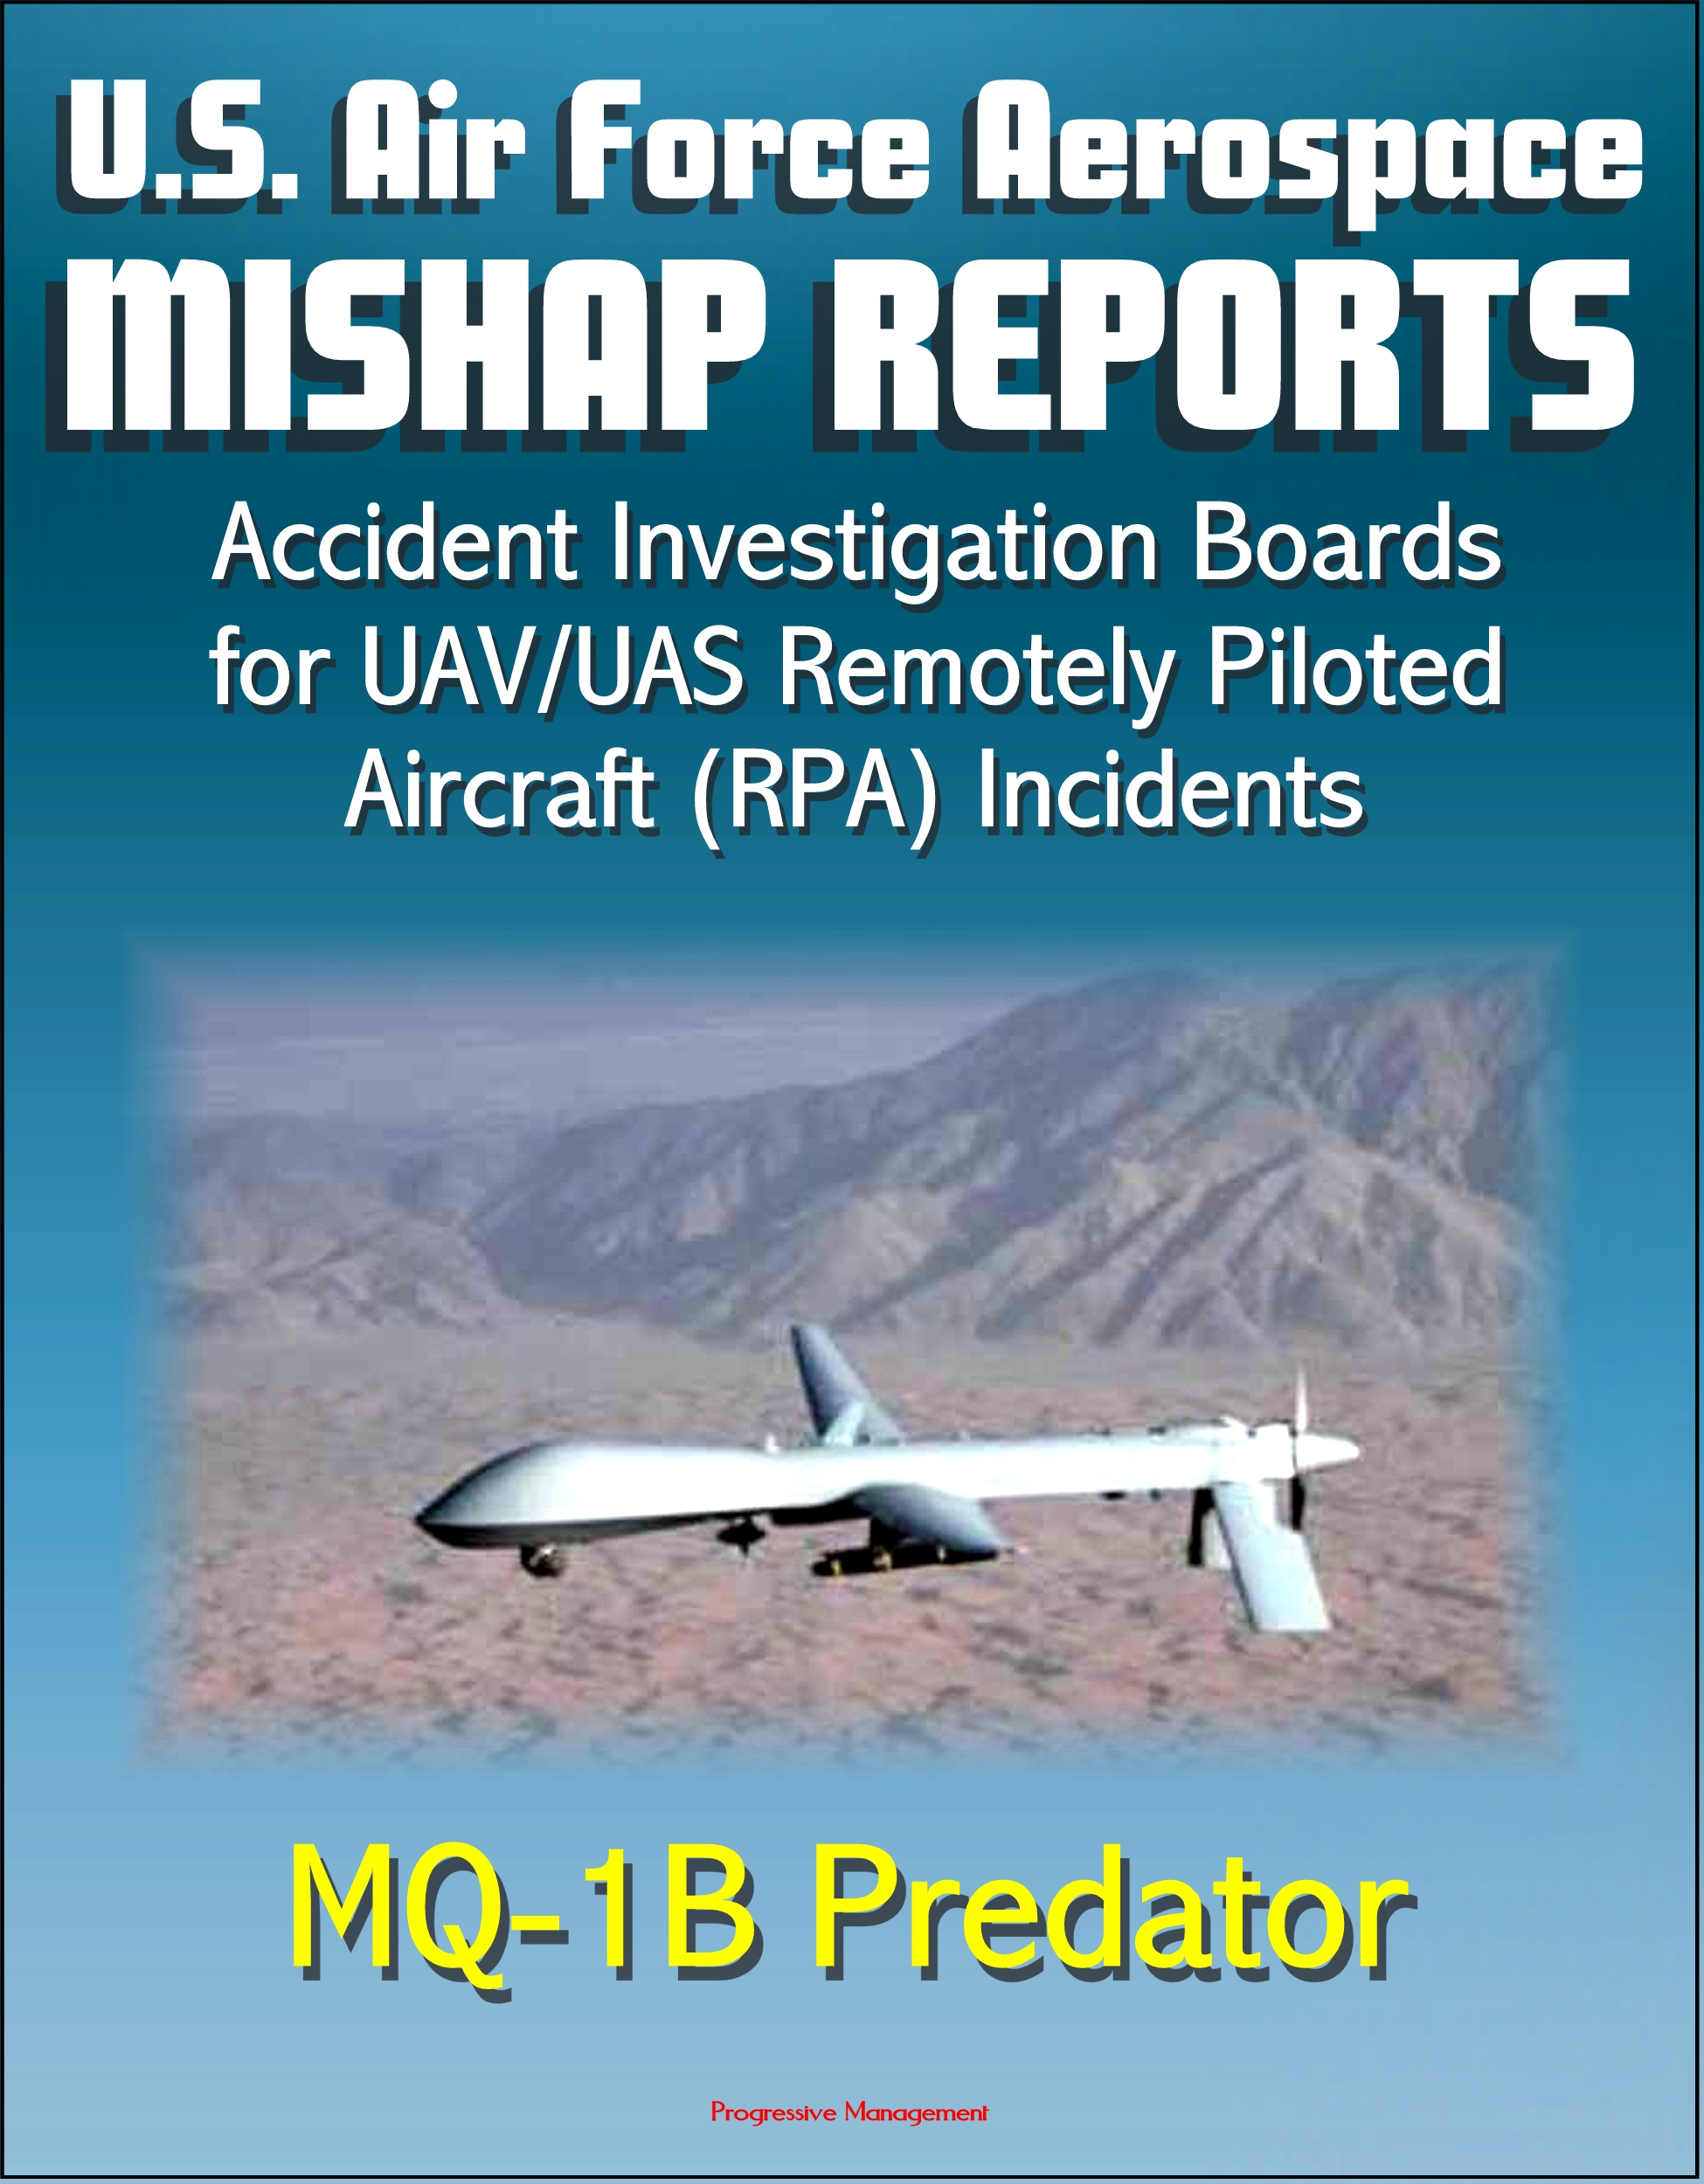 an introduction to the history of aircraft accidents investigation Accident history the first known aviation fatality  powerpoint slideshow about 'the history of aircraft accident investigation' introduction to accident.